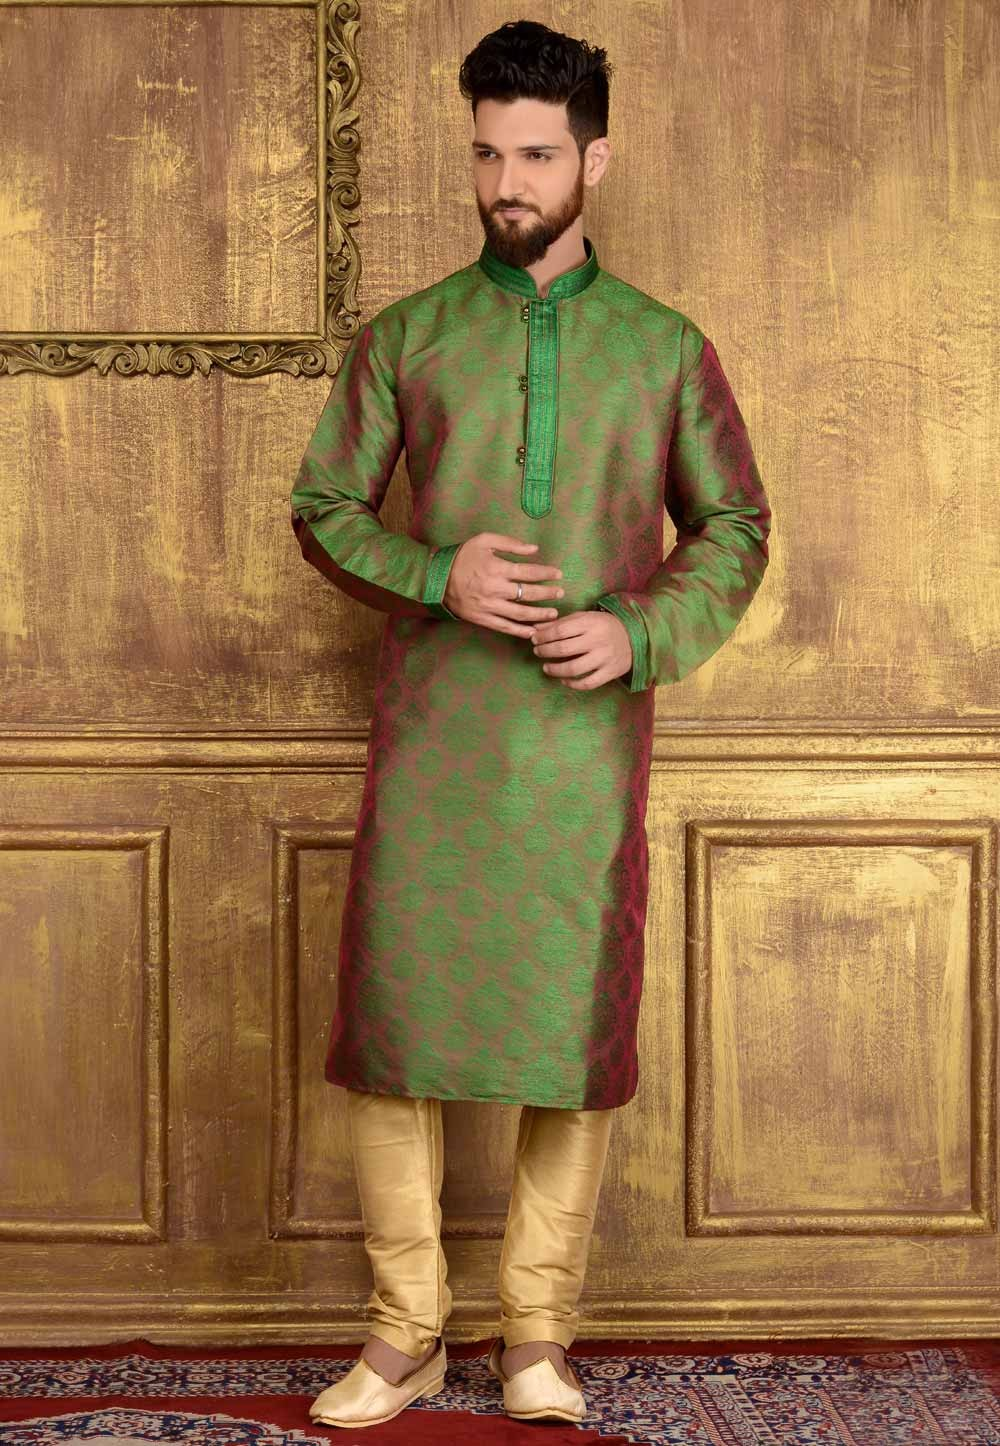 Green Color Jacquard,Brocade Silk Men's Readymade Kurta Pajama.